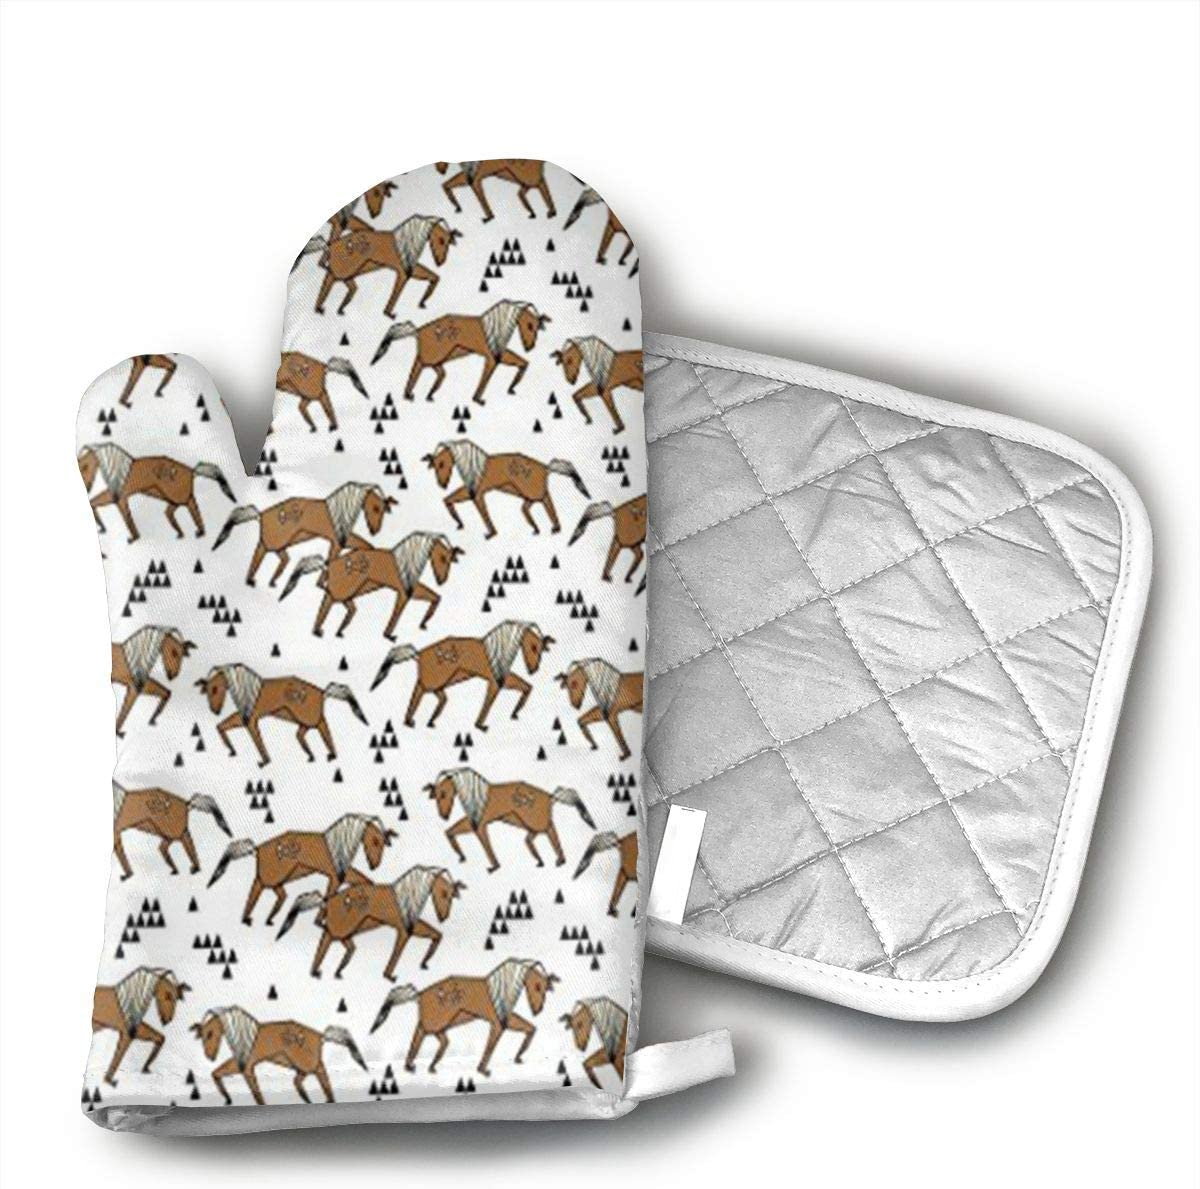 Geo Horse Triangles Kids Horse Brown Oven Mitts,Heat Resistant Oven Gloves,Non-Slip Cooking Gloves,Washable Kitchen Mitts for Baking, Barbecue.